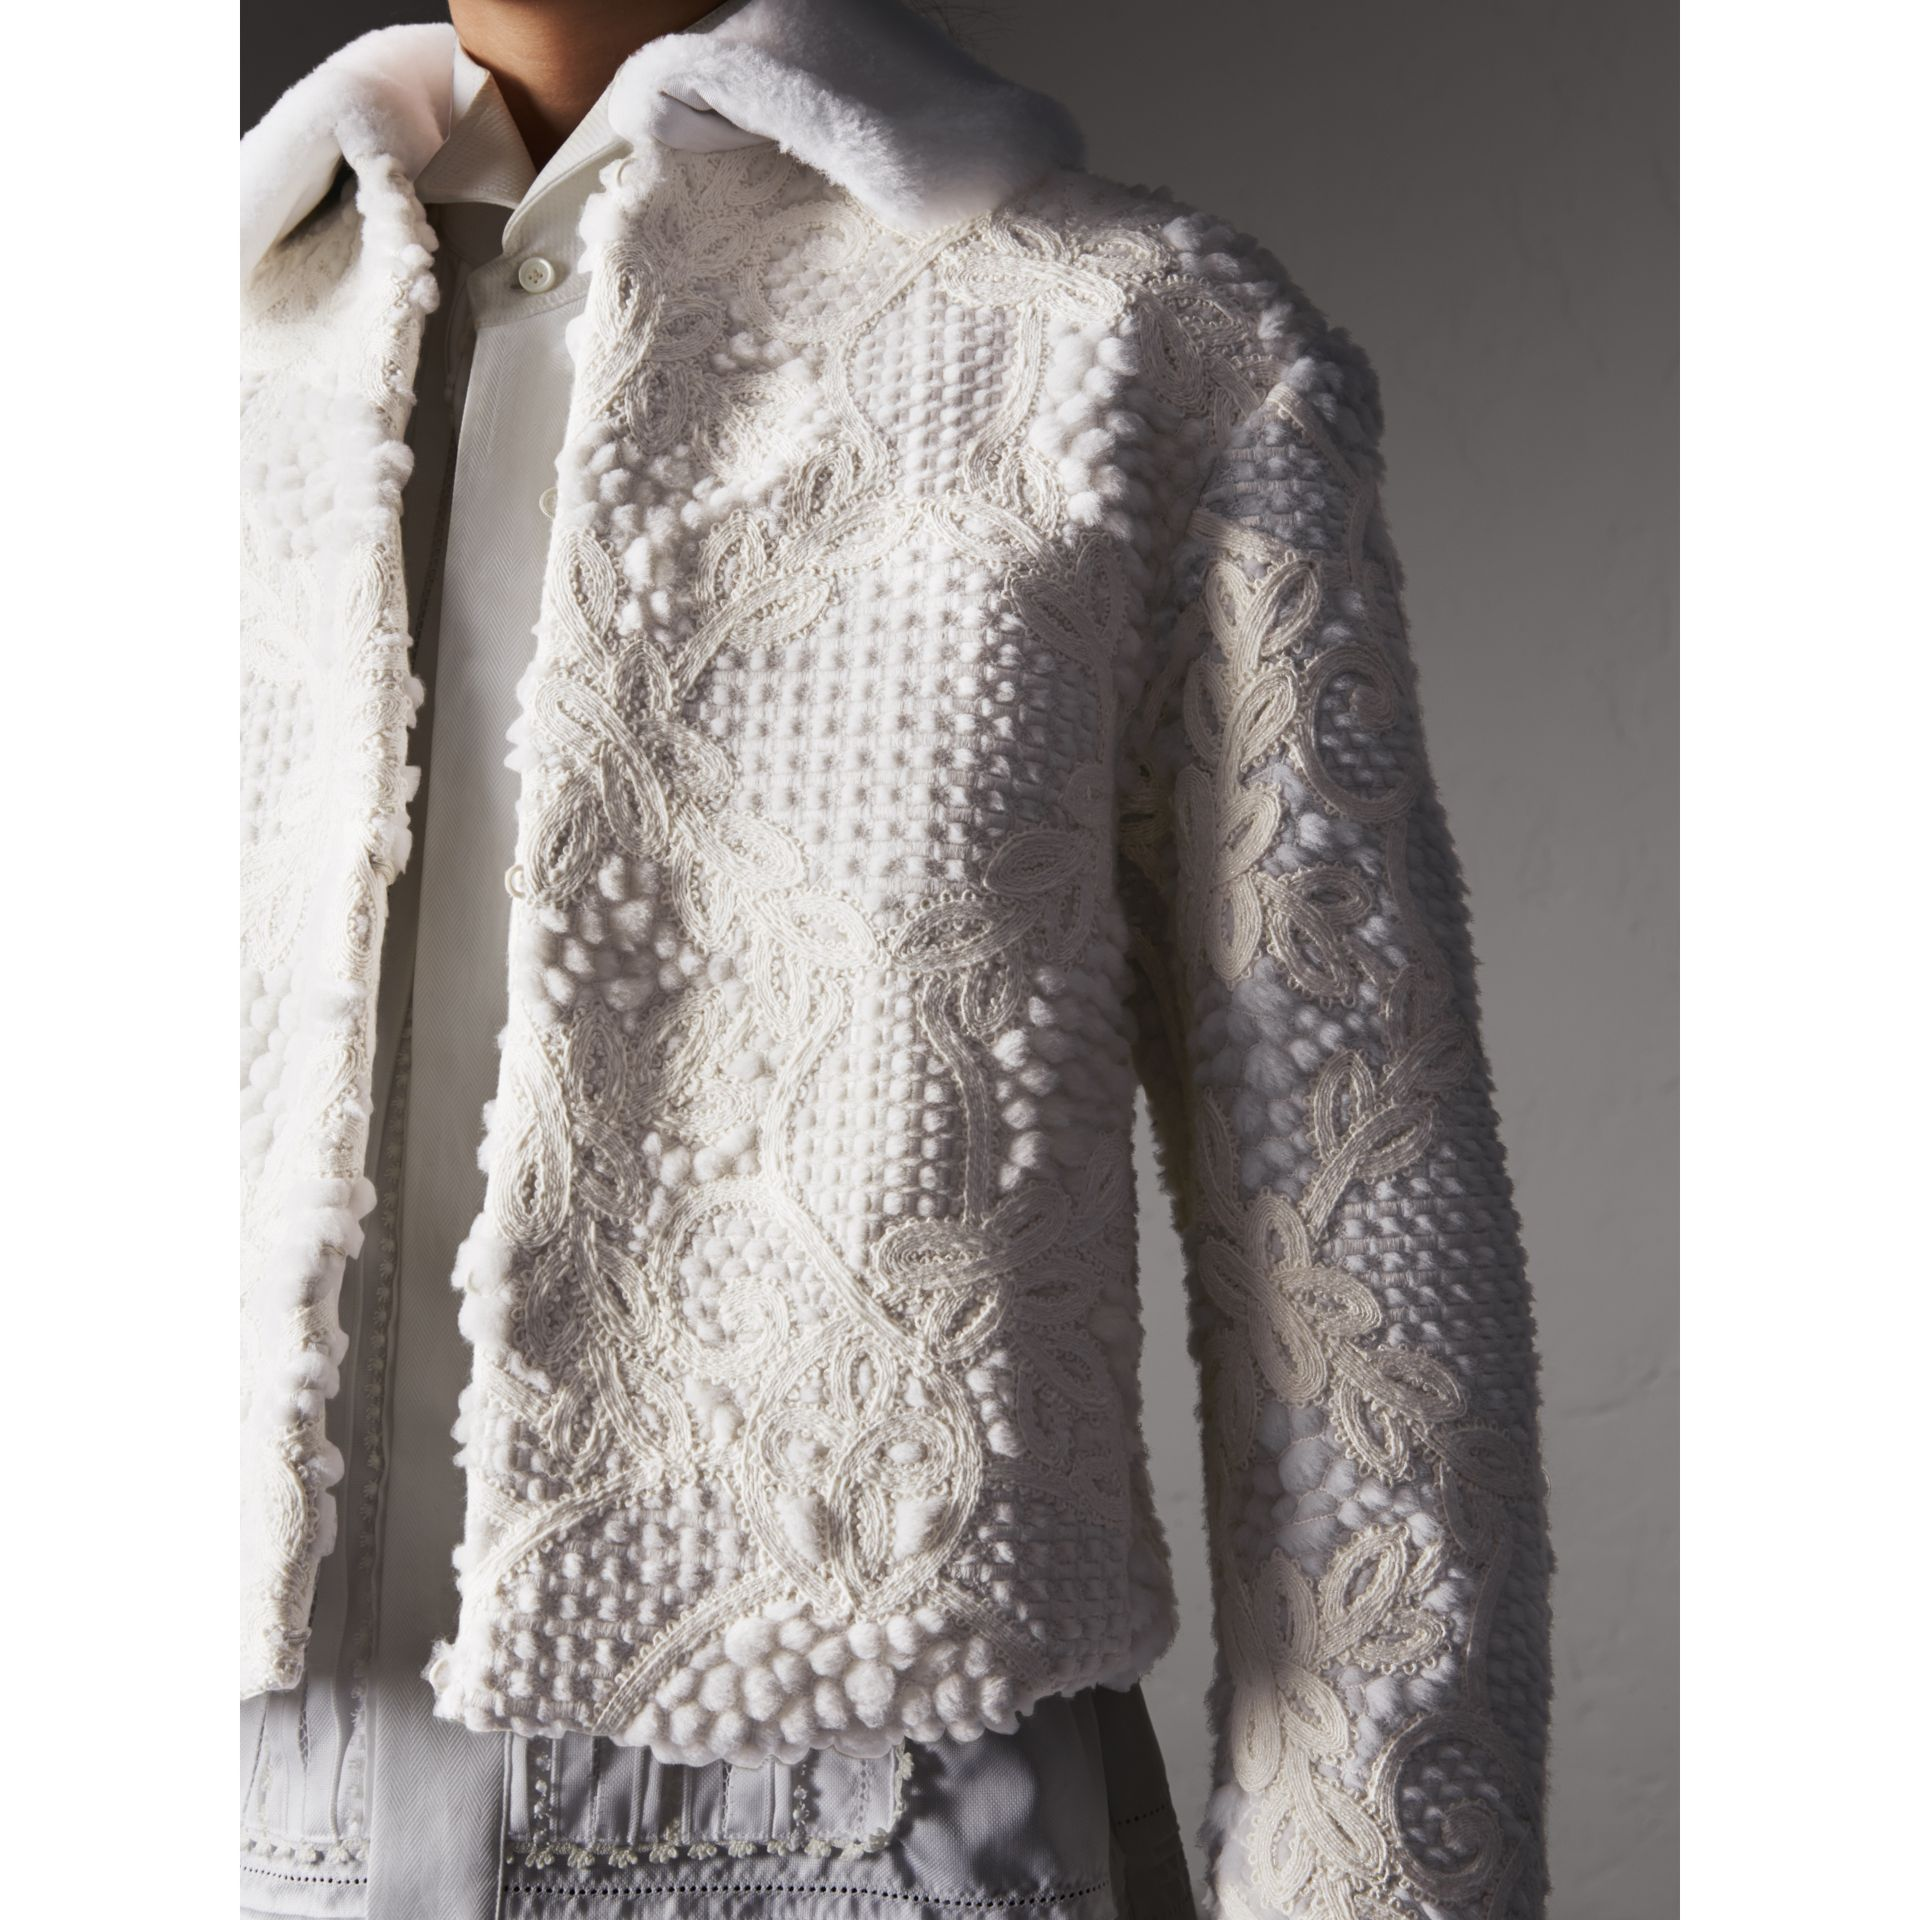 Macramé Lace-embellished Shearling Jacket in White - Women | Burberry Singapore - gallery image 4